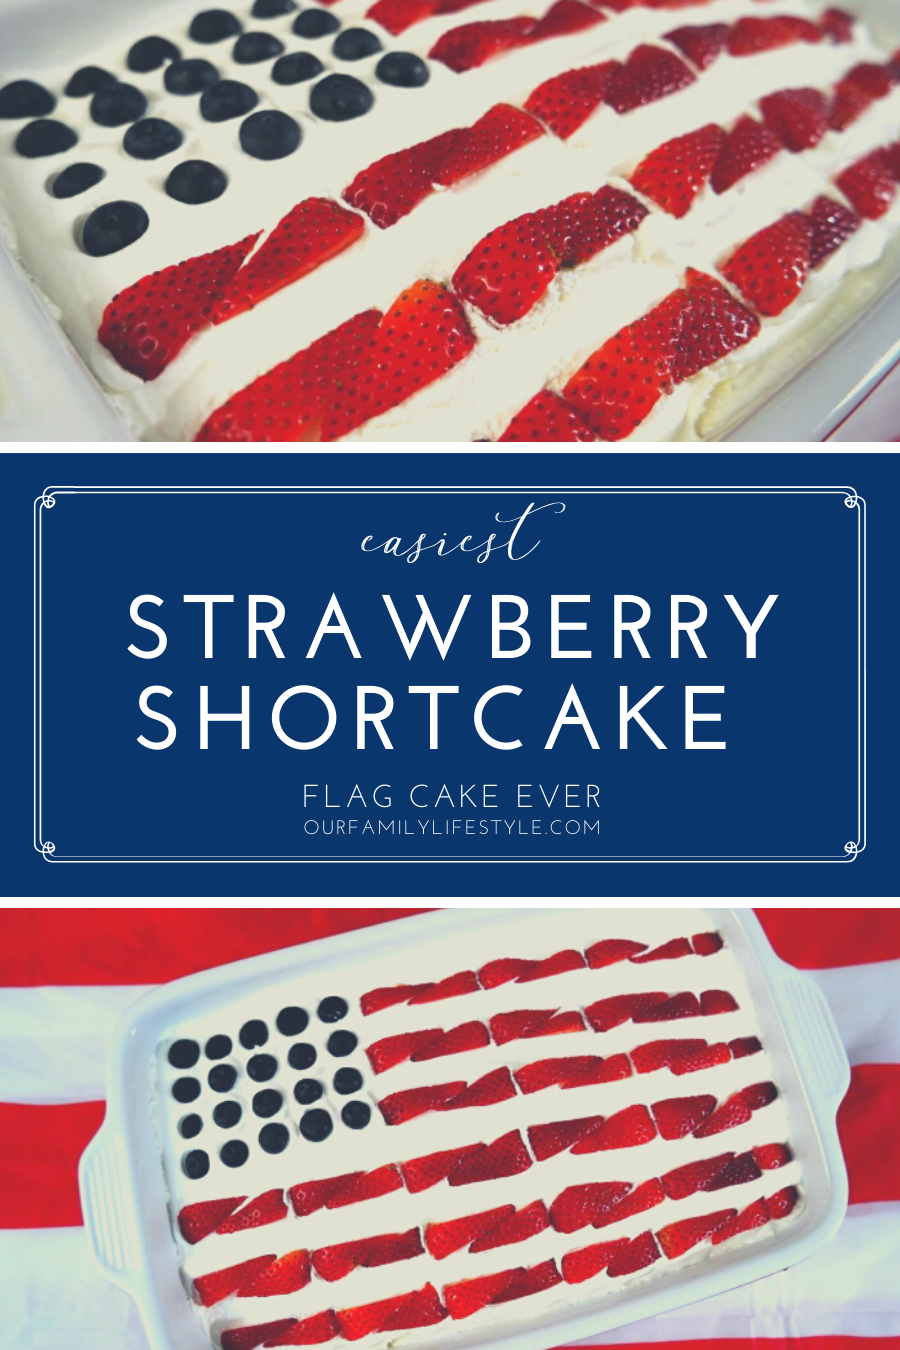 Easiest Strawberry Shortcake Flag Cake Ever